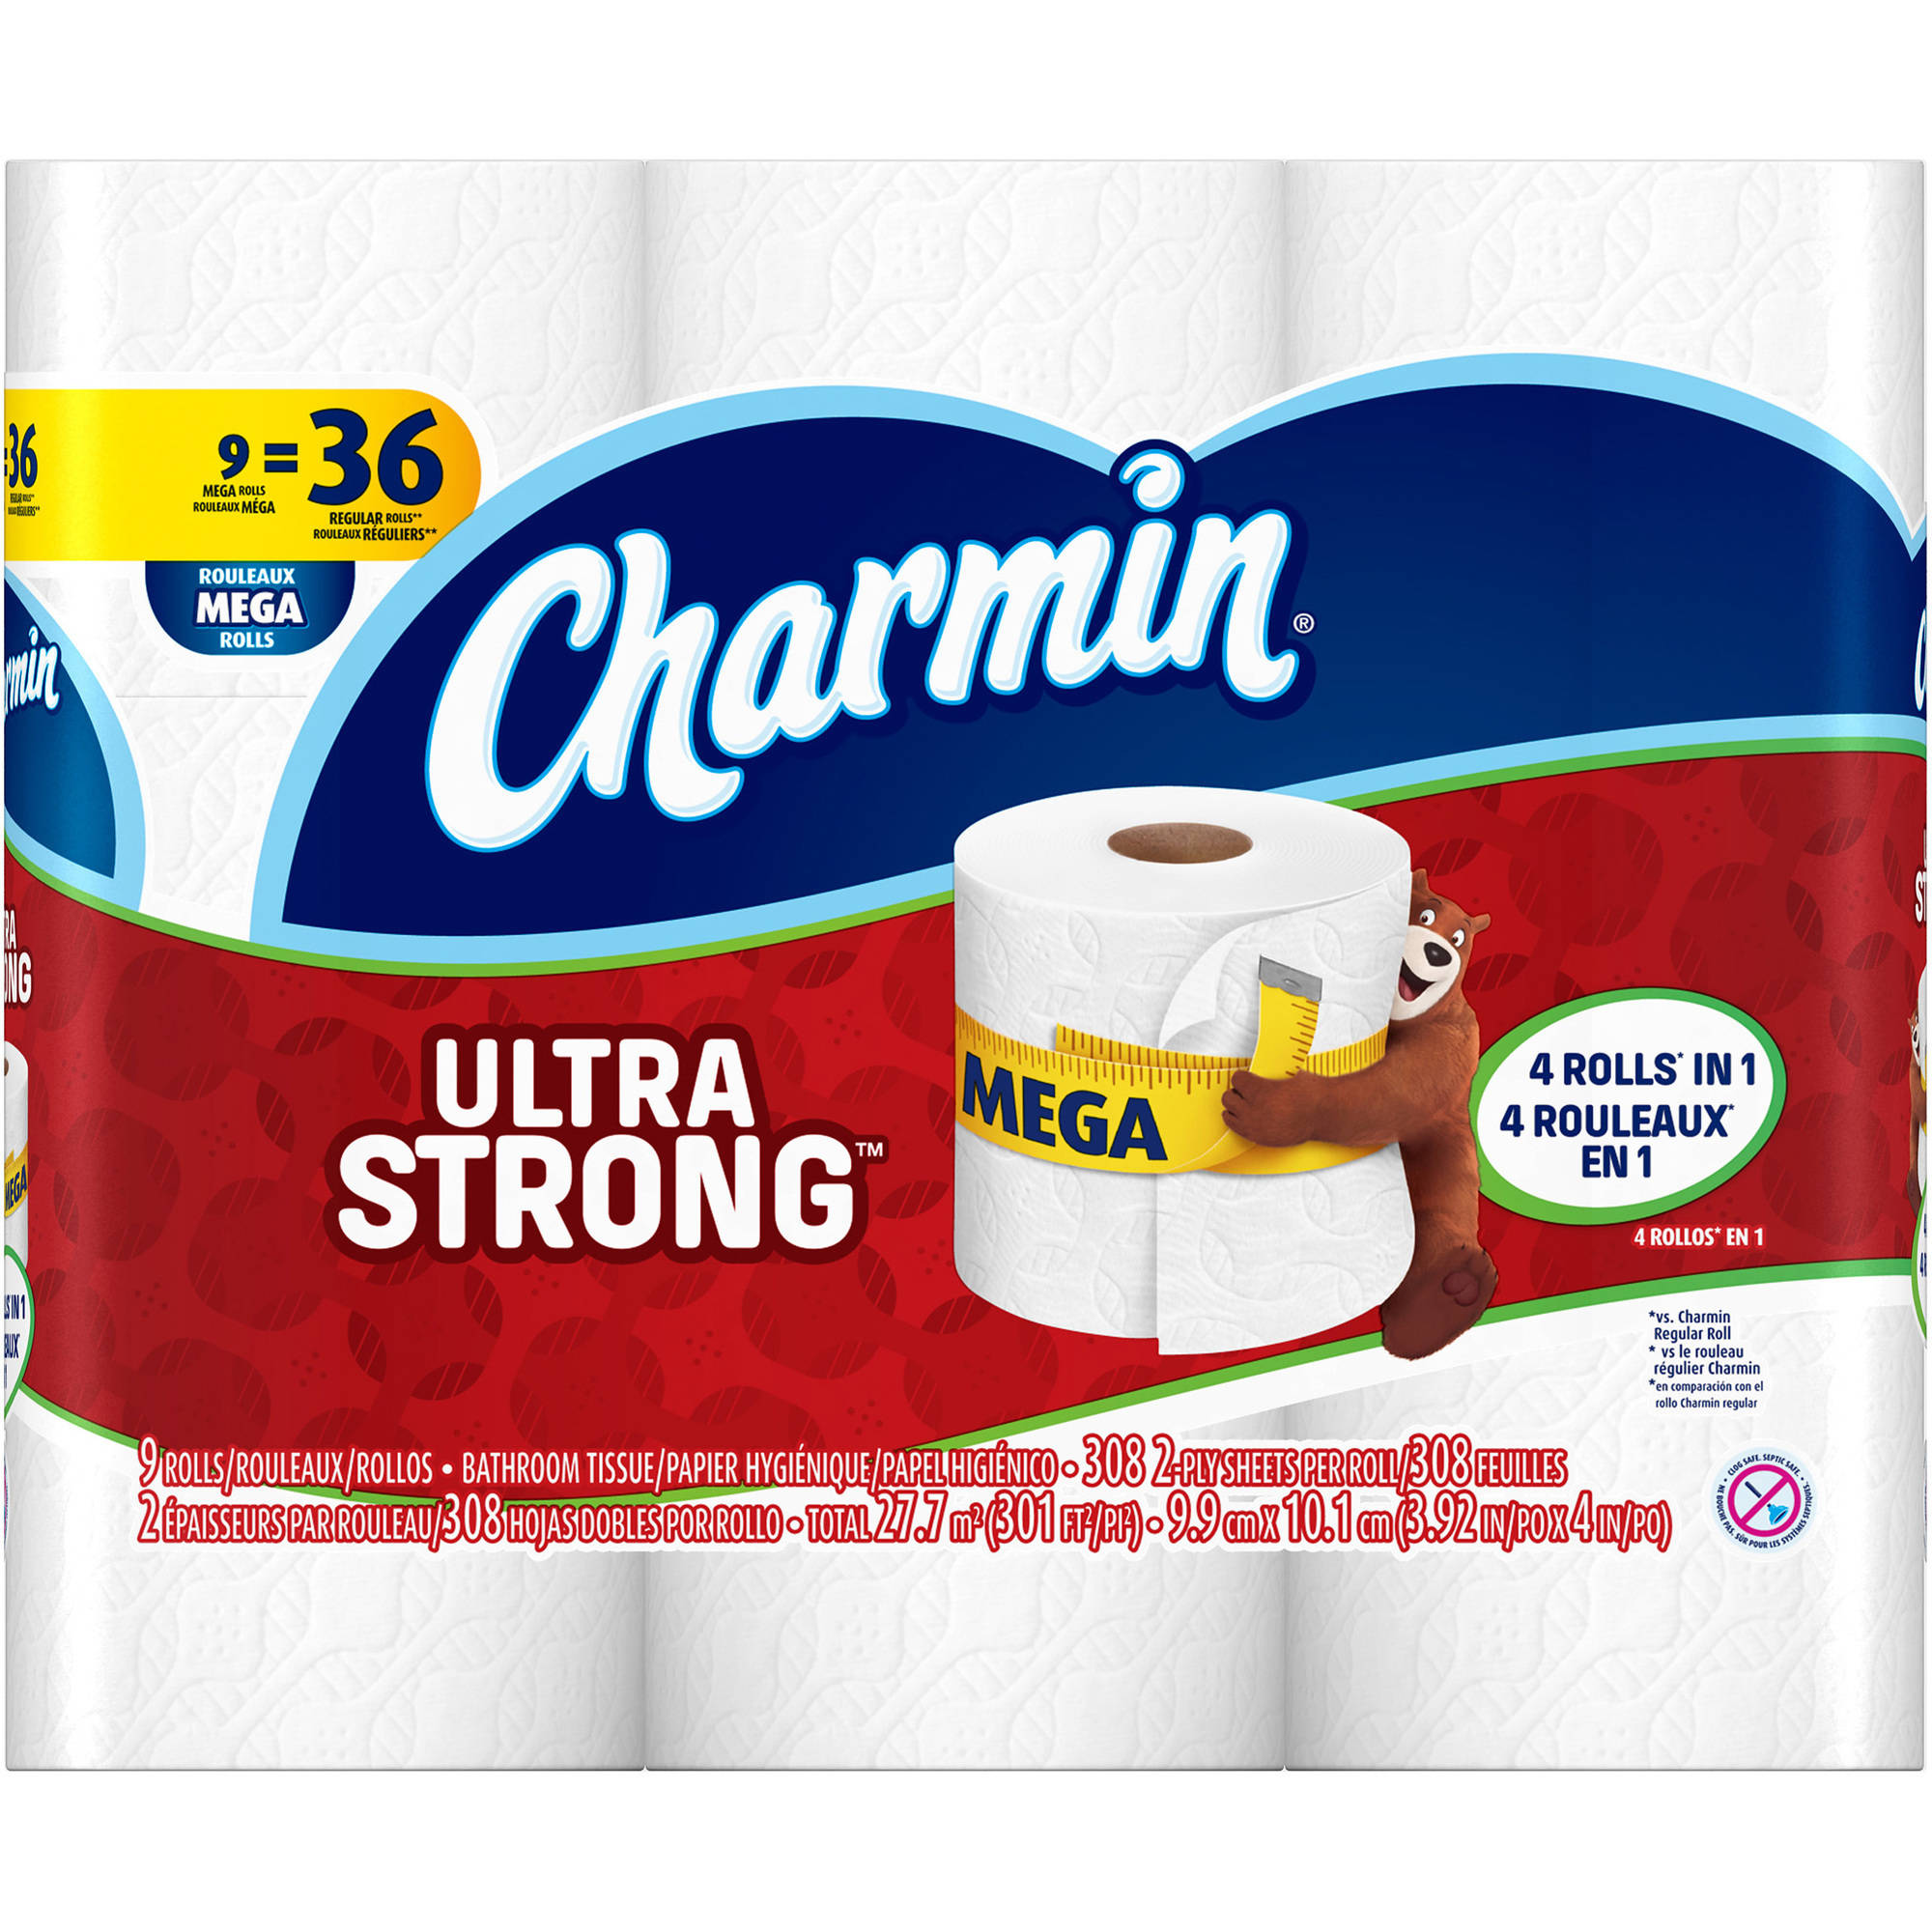 Charmin Ultra Strong Toilet Paper Mega Rolls, 308 sheets, 9 rolls